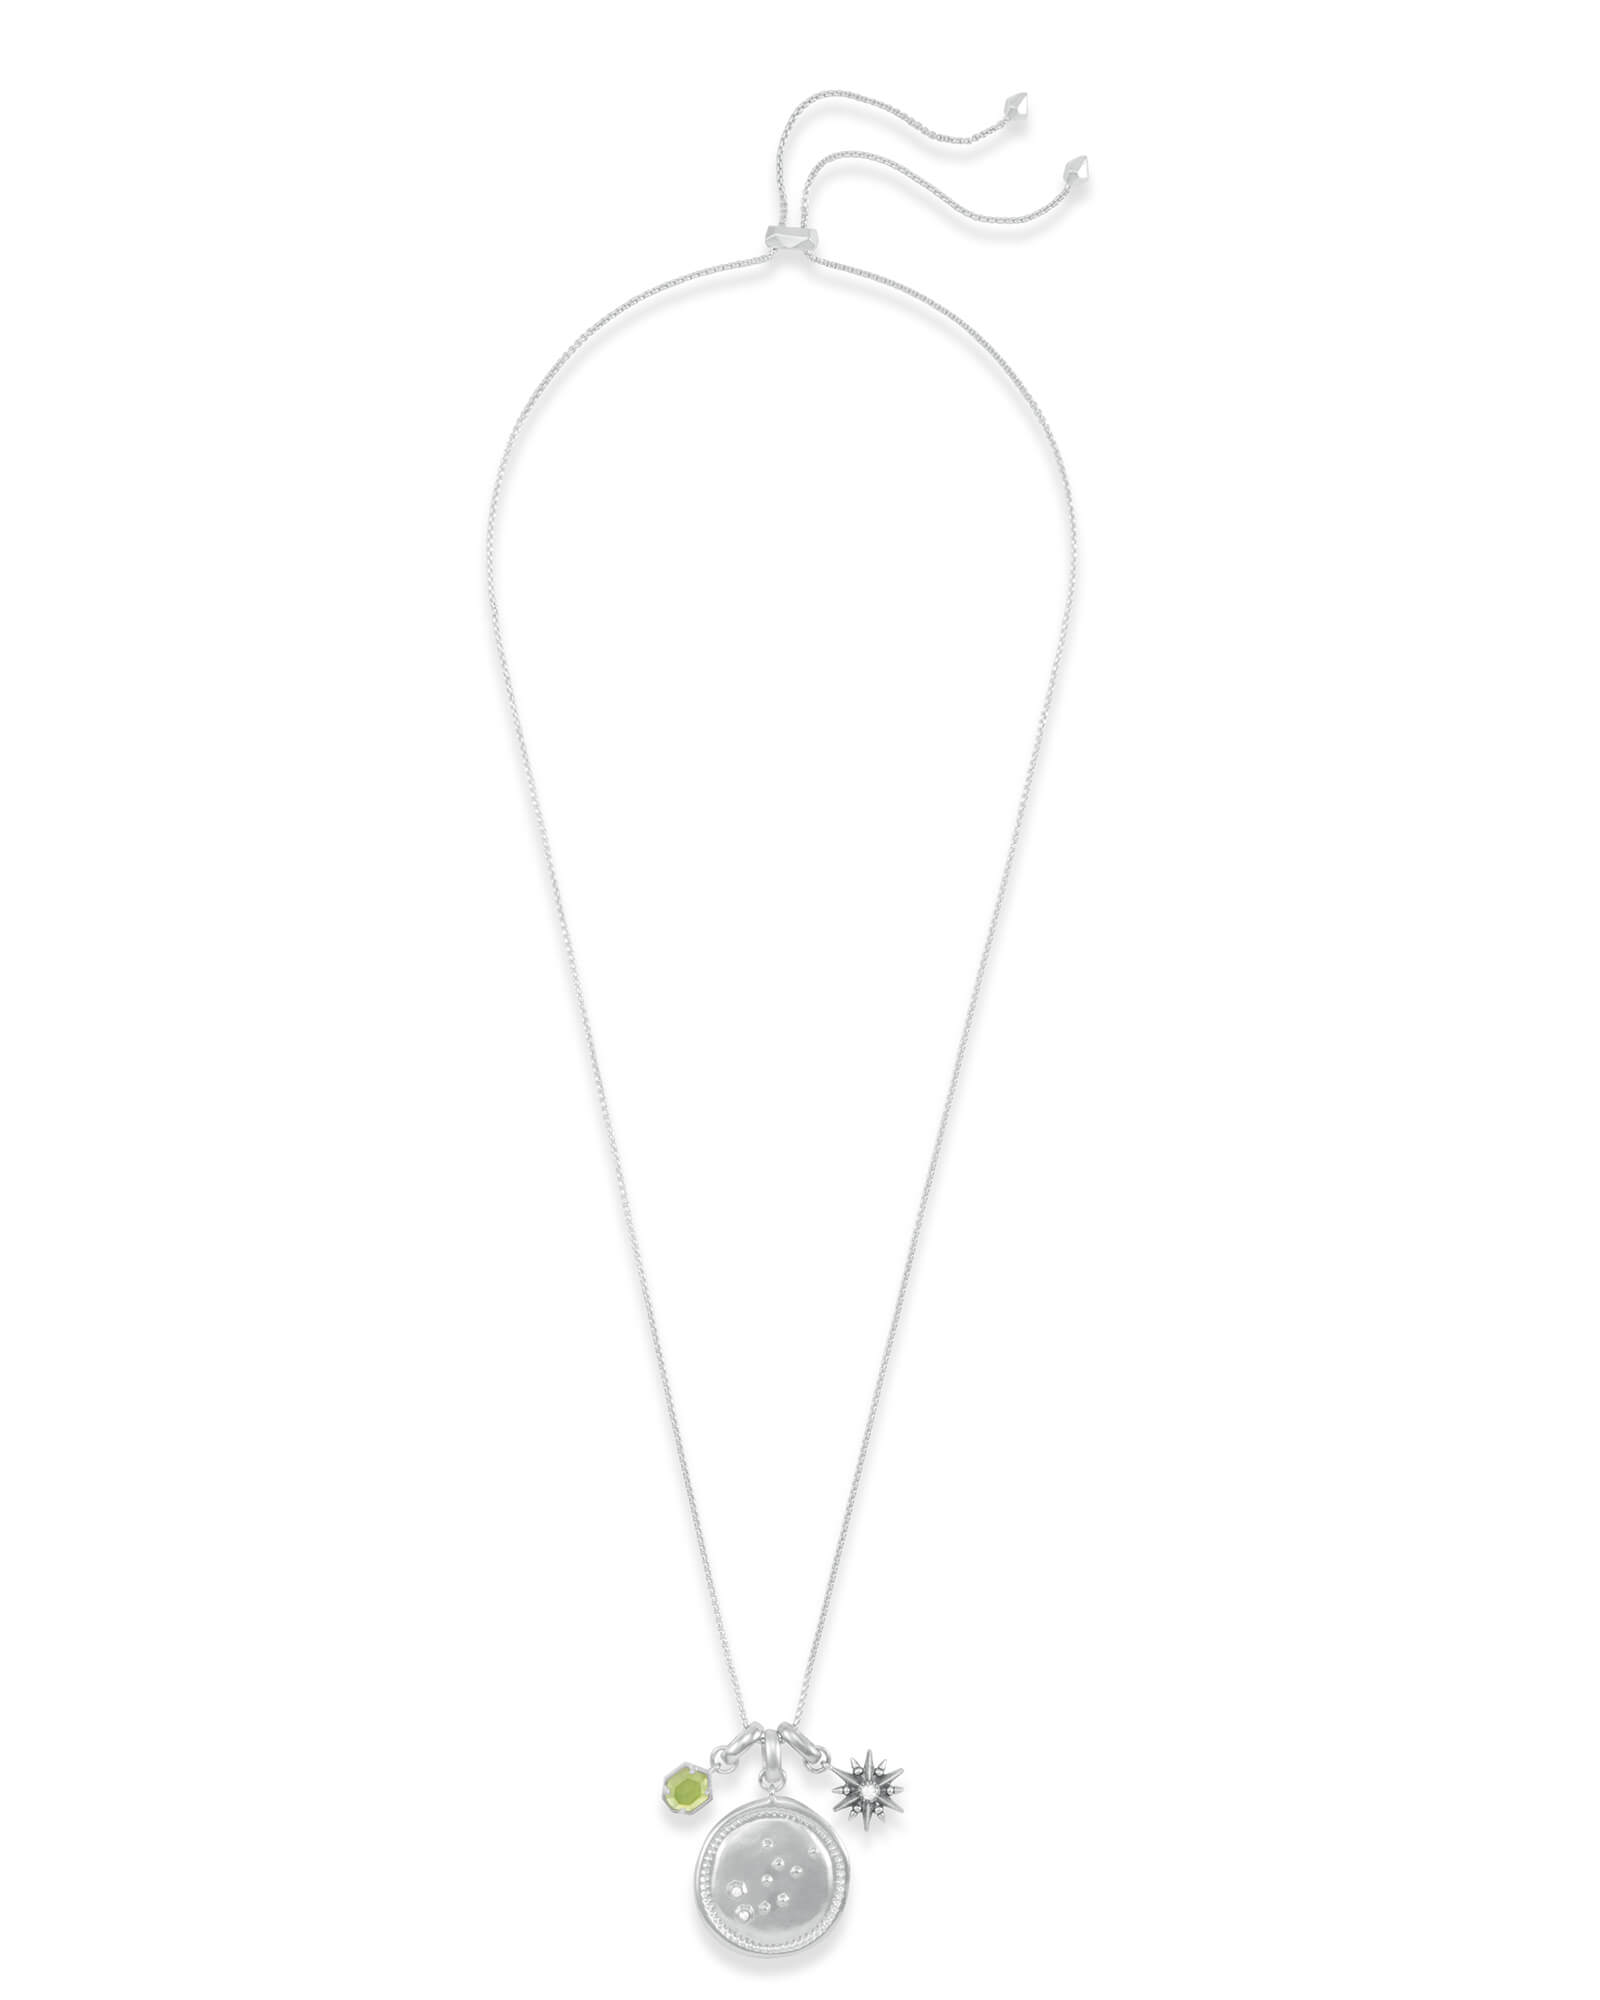 August Virgo Charm Necklace Set in Silver